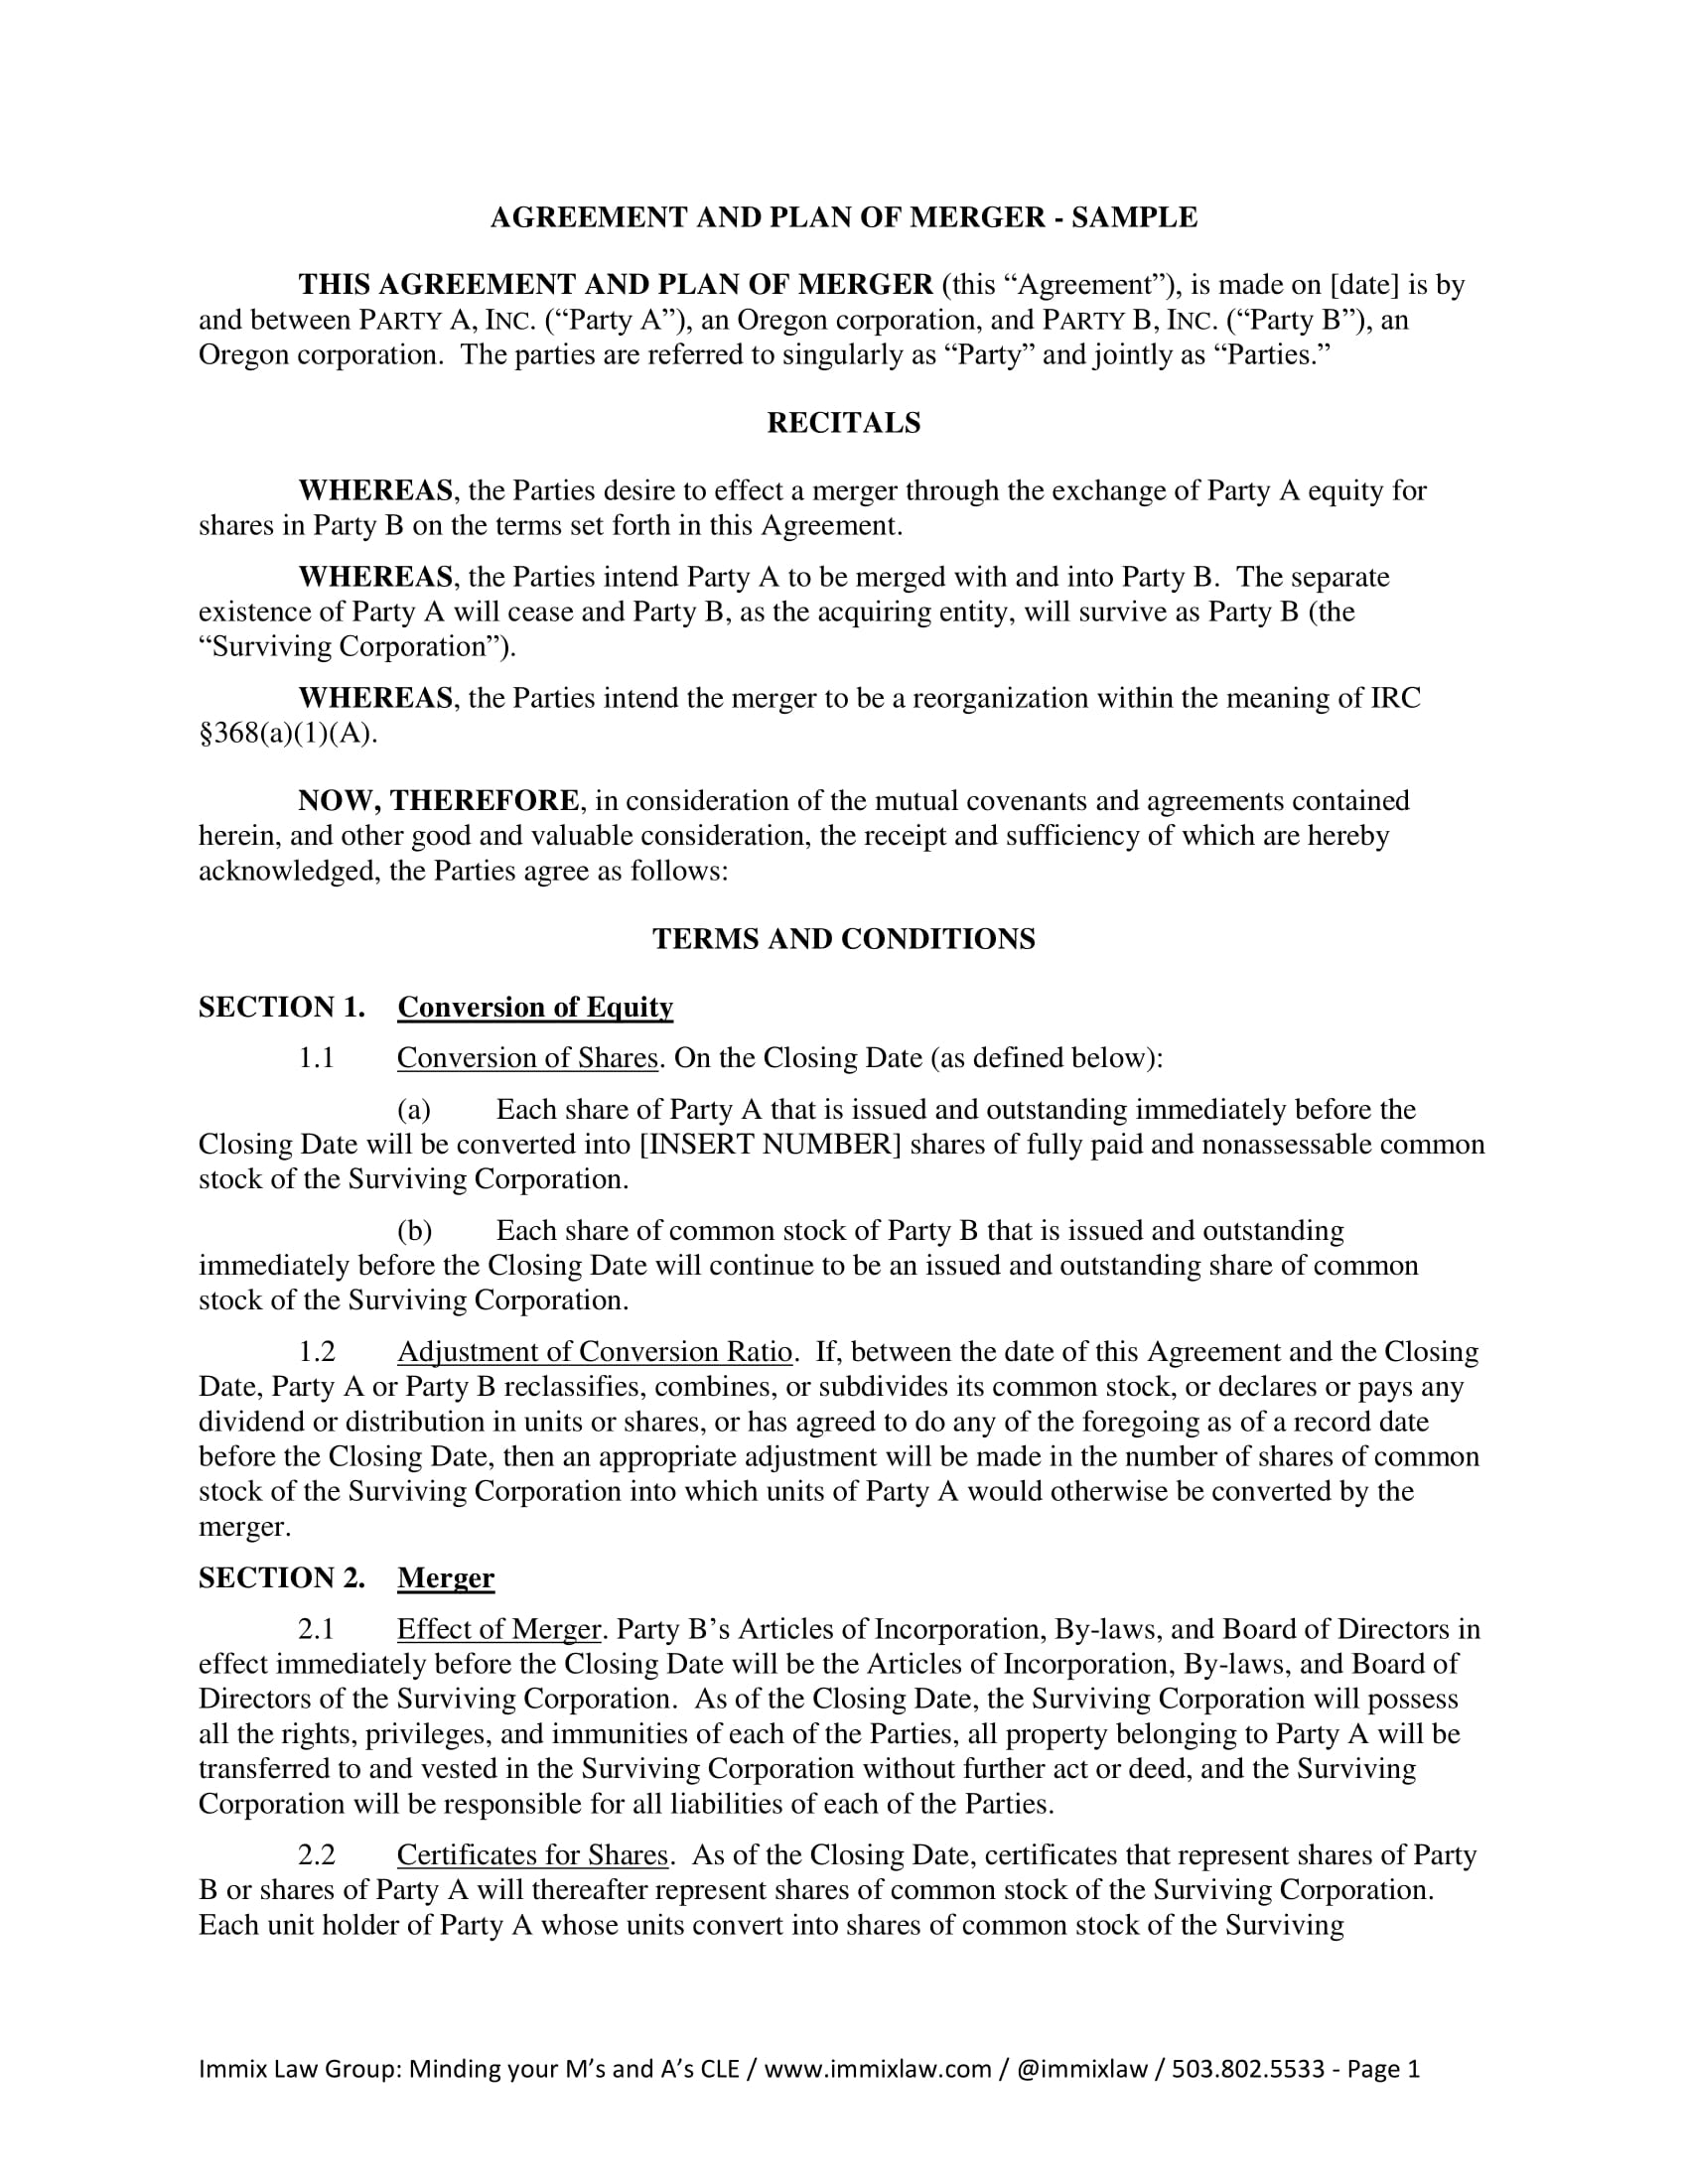 plan of merger agreement contract form 1